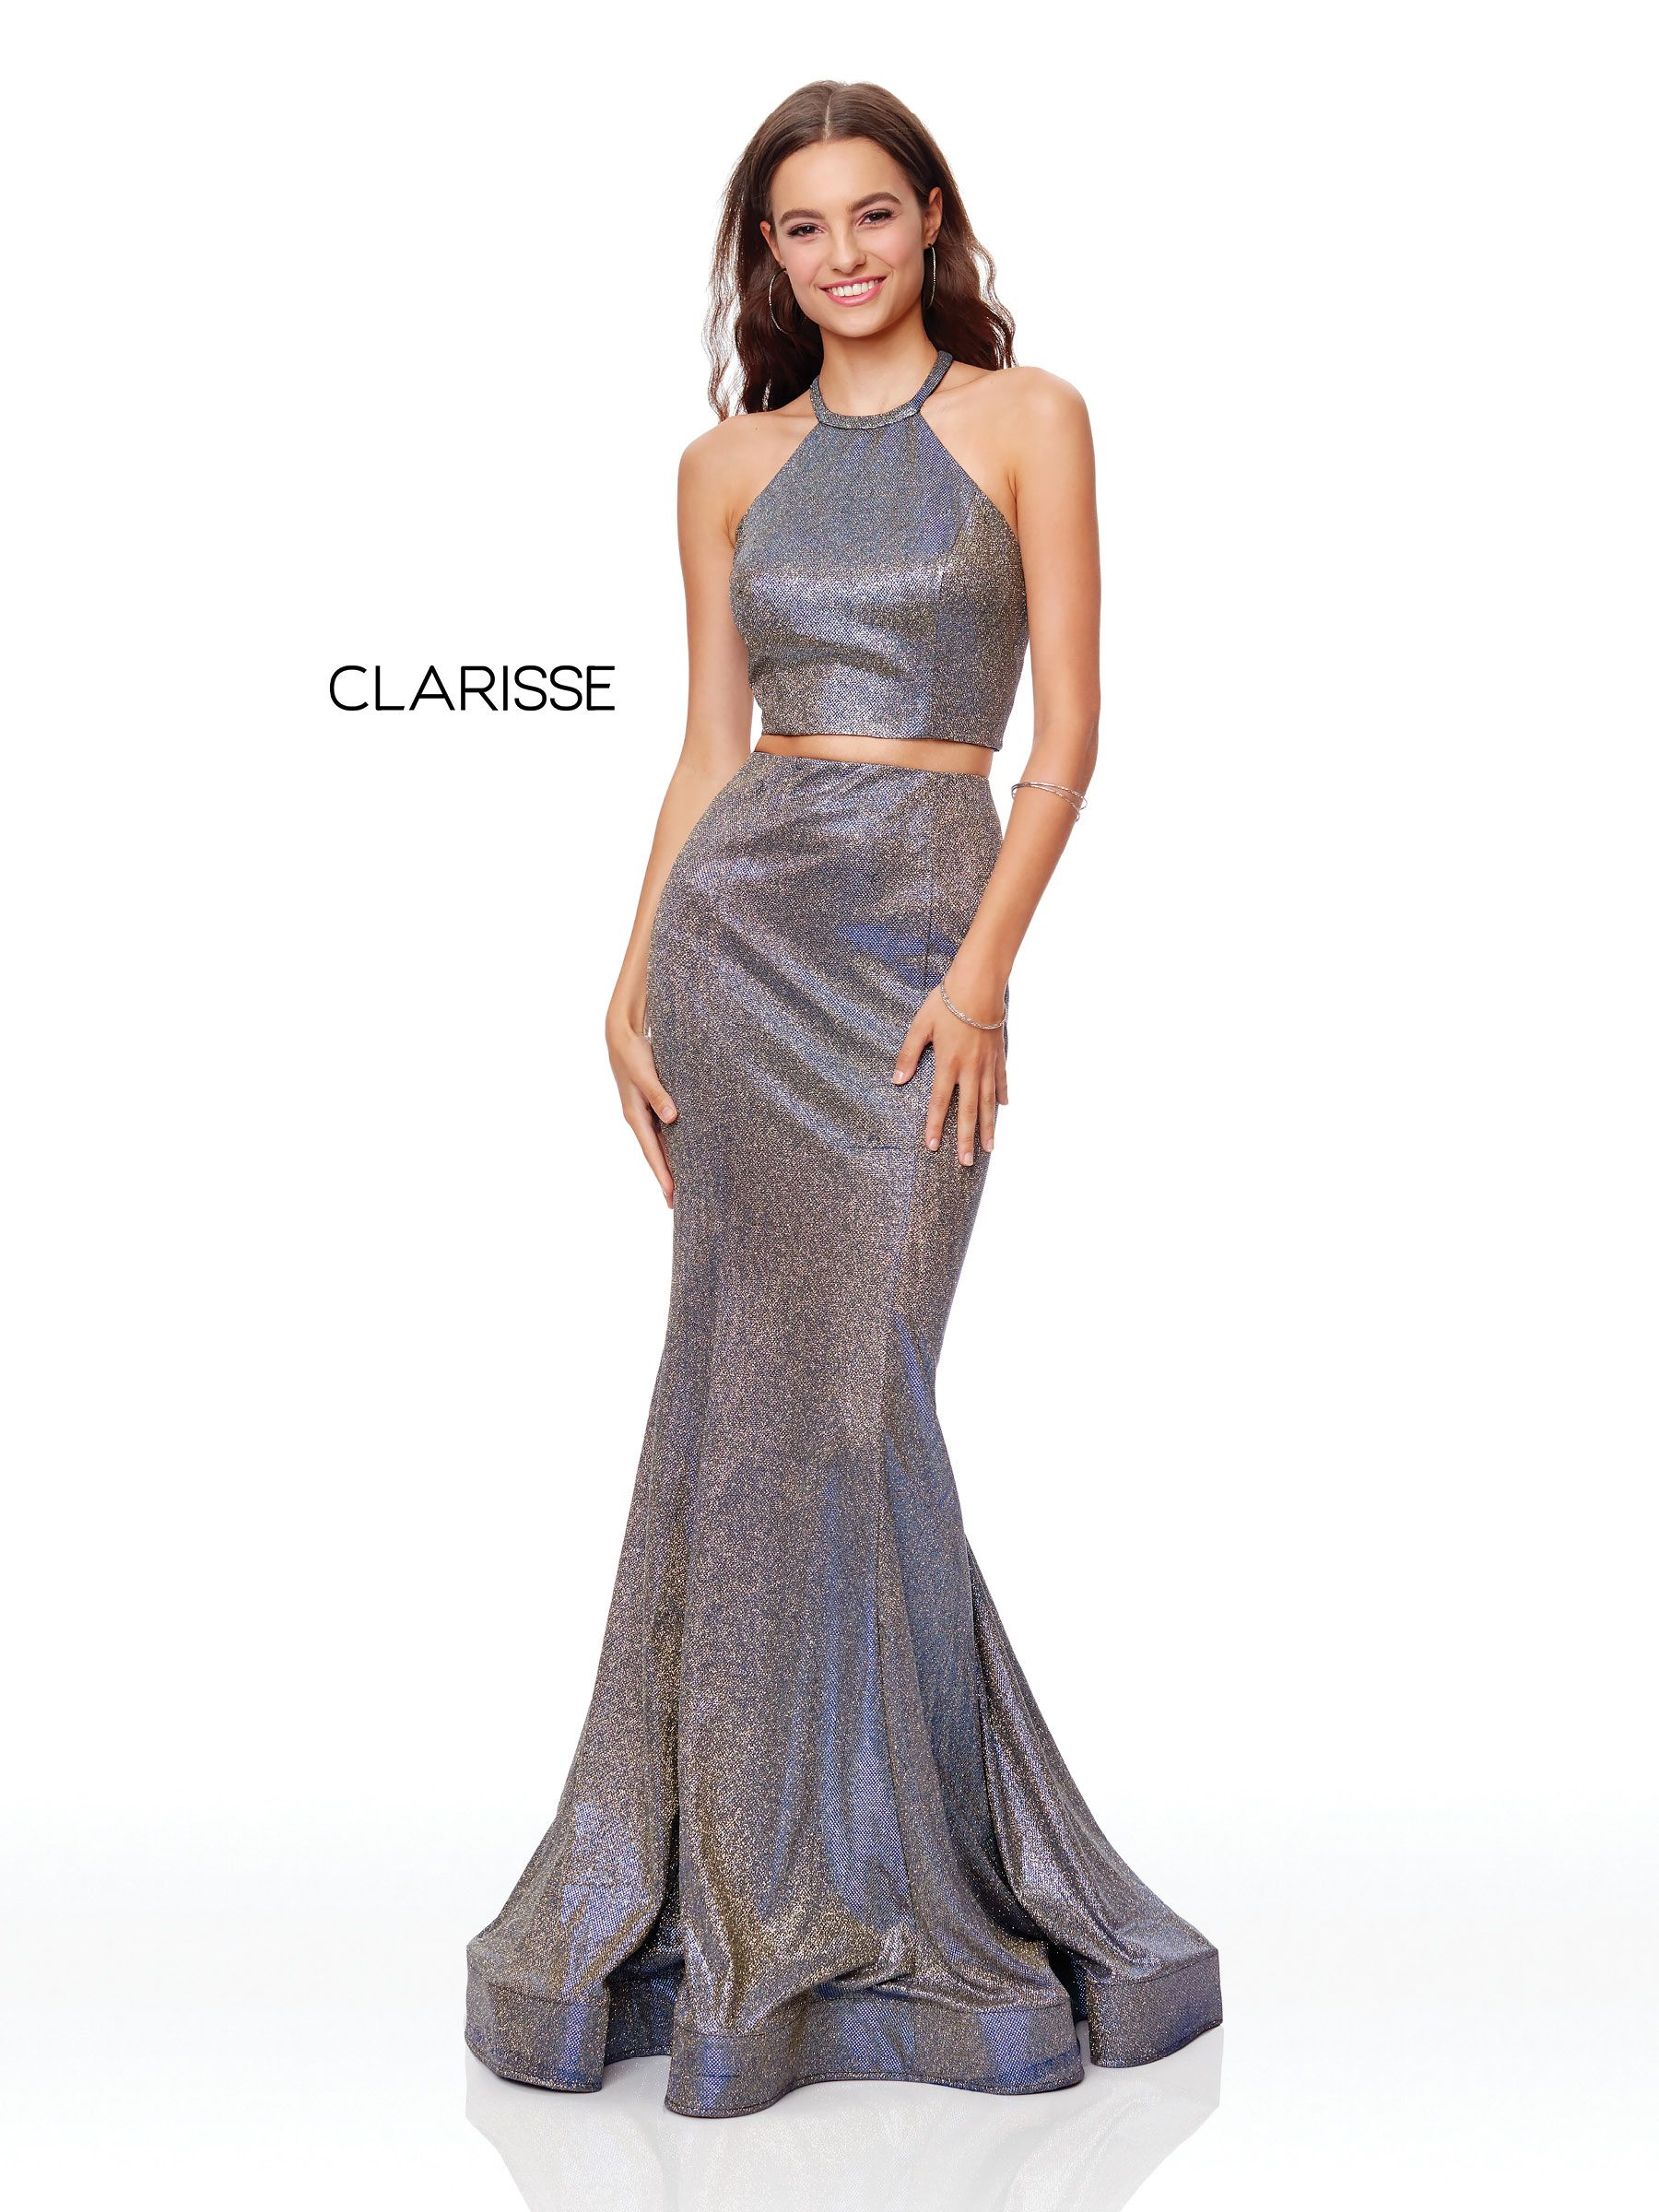 997041a9a73d9 3791 - Gold and Indigo two piece dress with a halter top and fit to flare  bottom